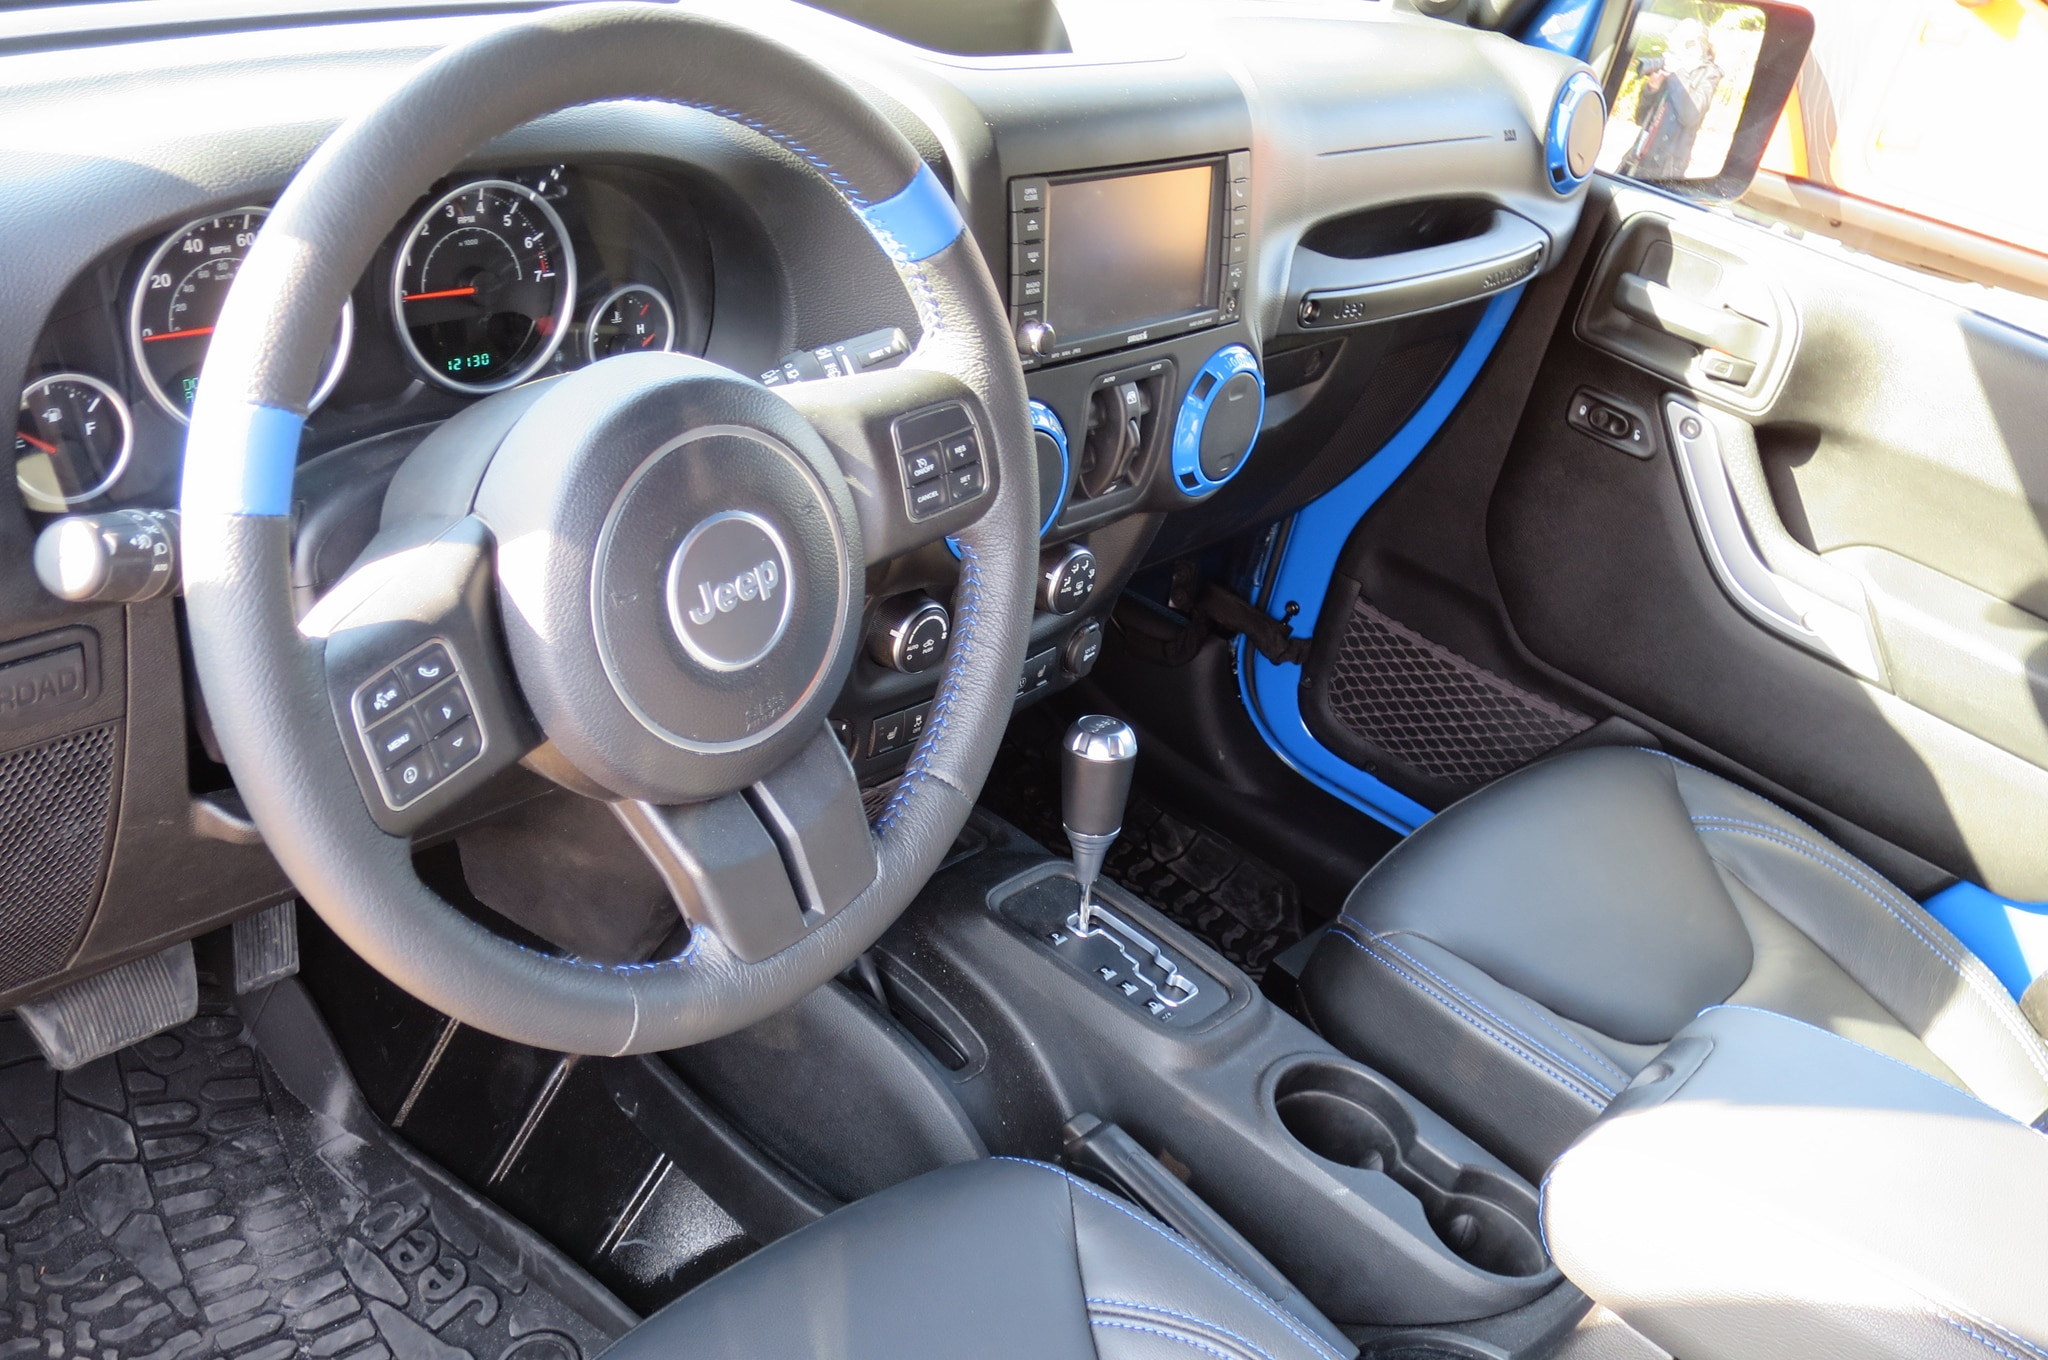 Jeep Wrangler Maximum Performance Concept interior